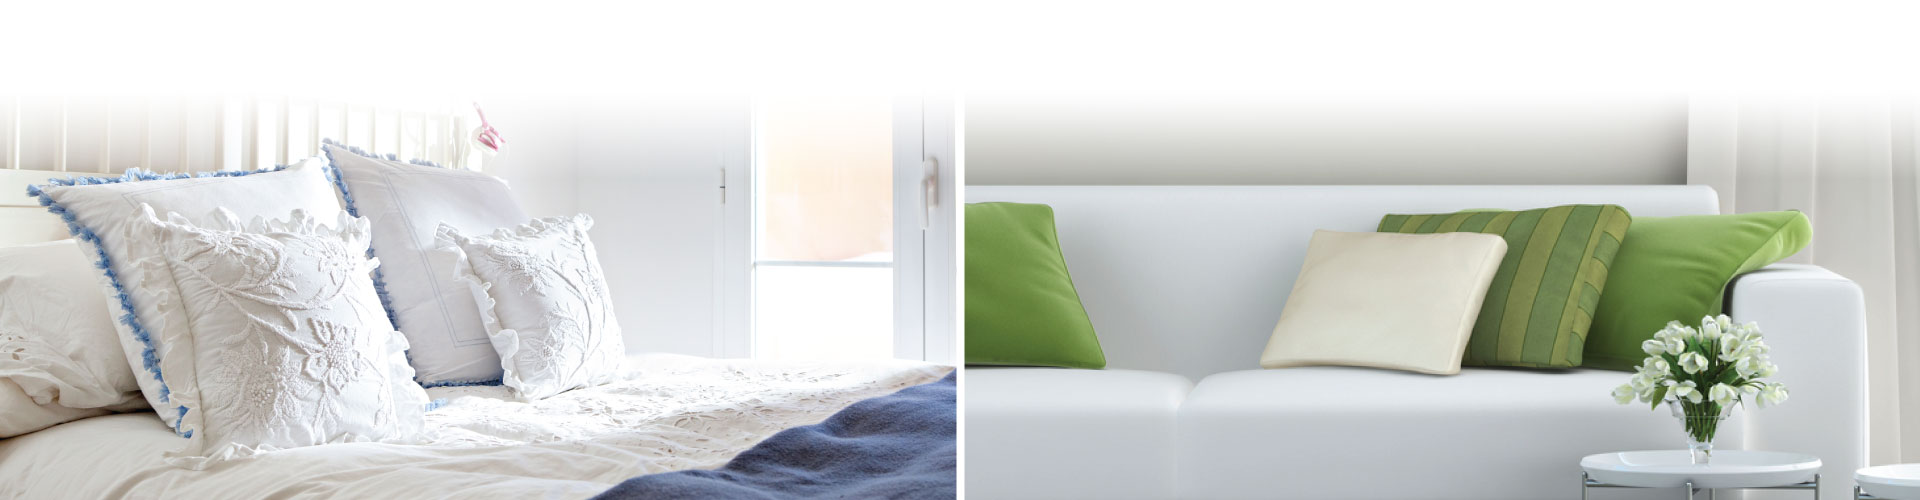 Diptych of bed and couch